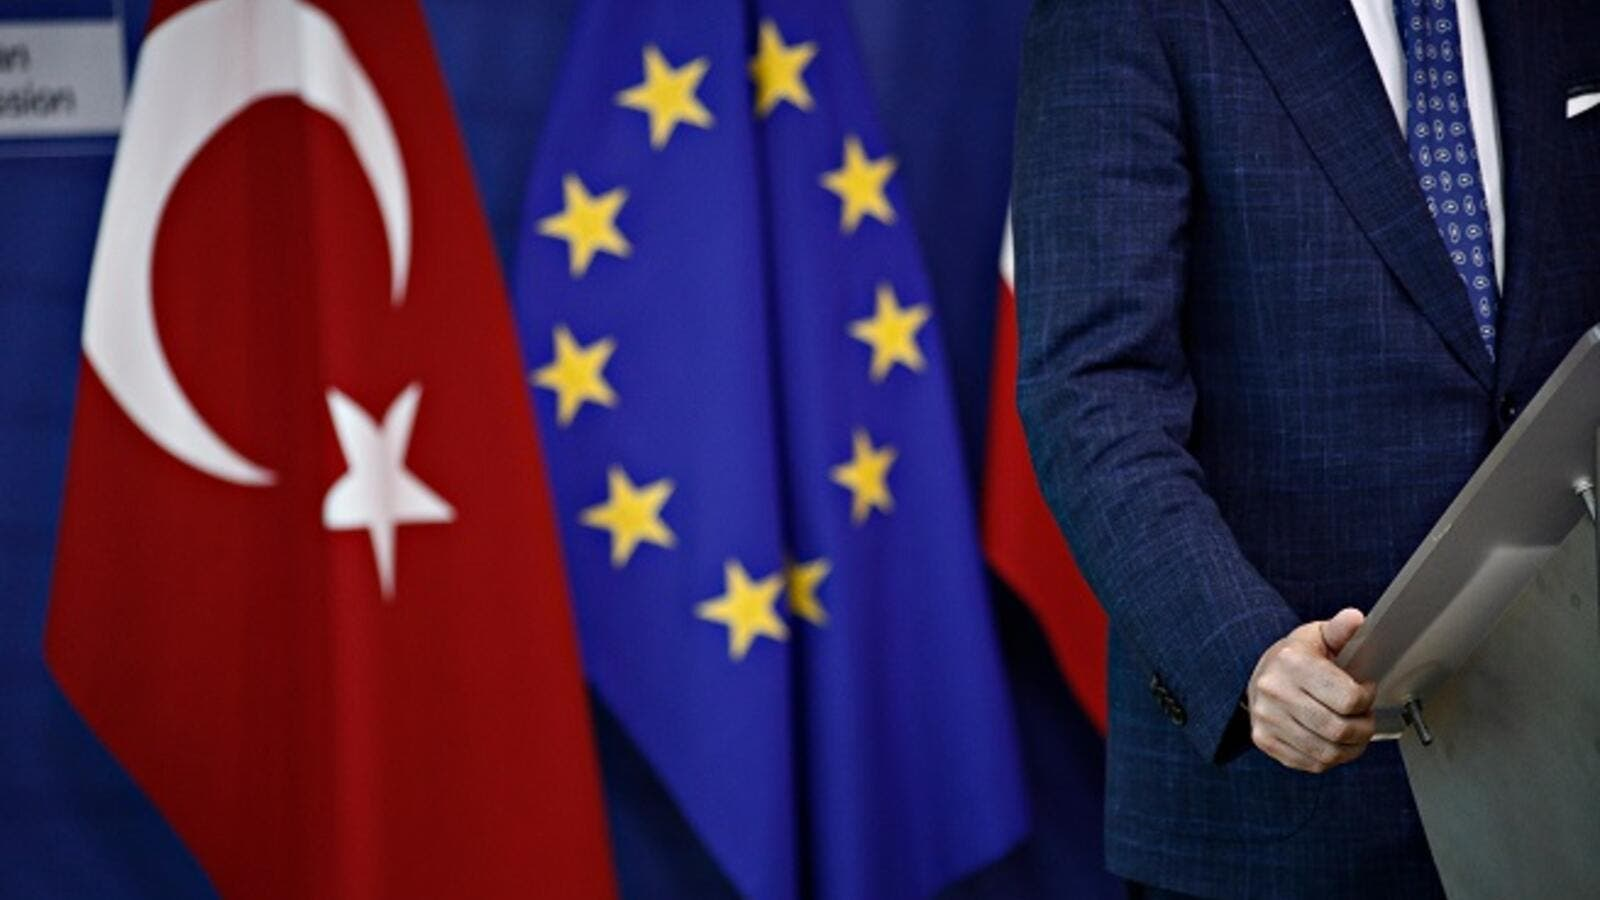 The reform group also vowed to improve basic freedoms and the judiciary as it convened for the first time since Turkey switched to an executive presidential system after June 24 elections. (Shutterstock)